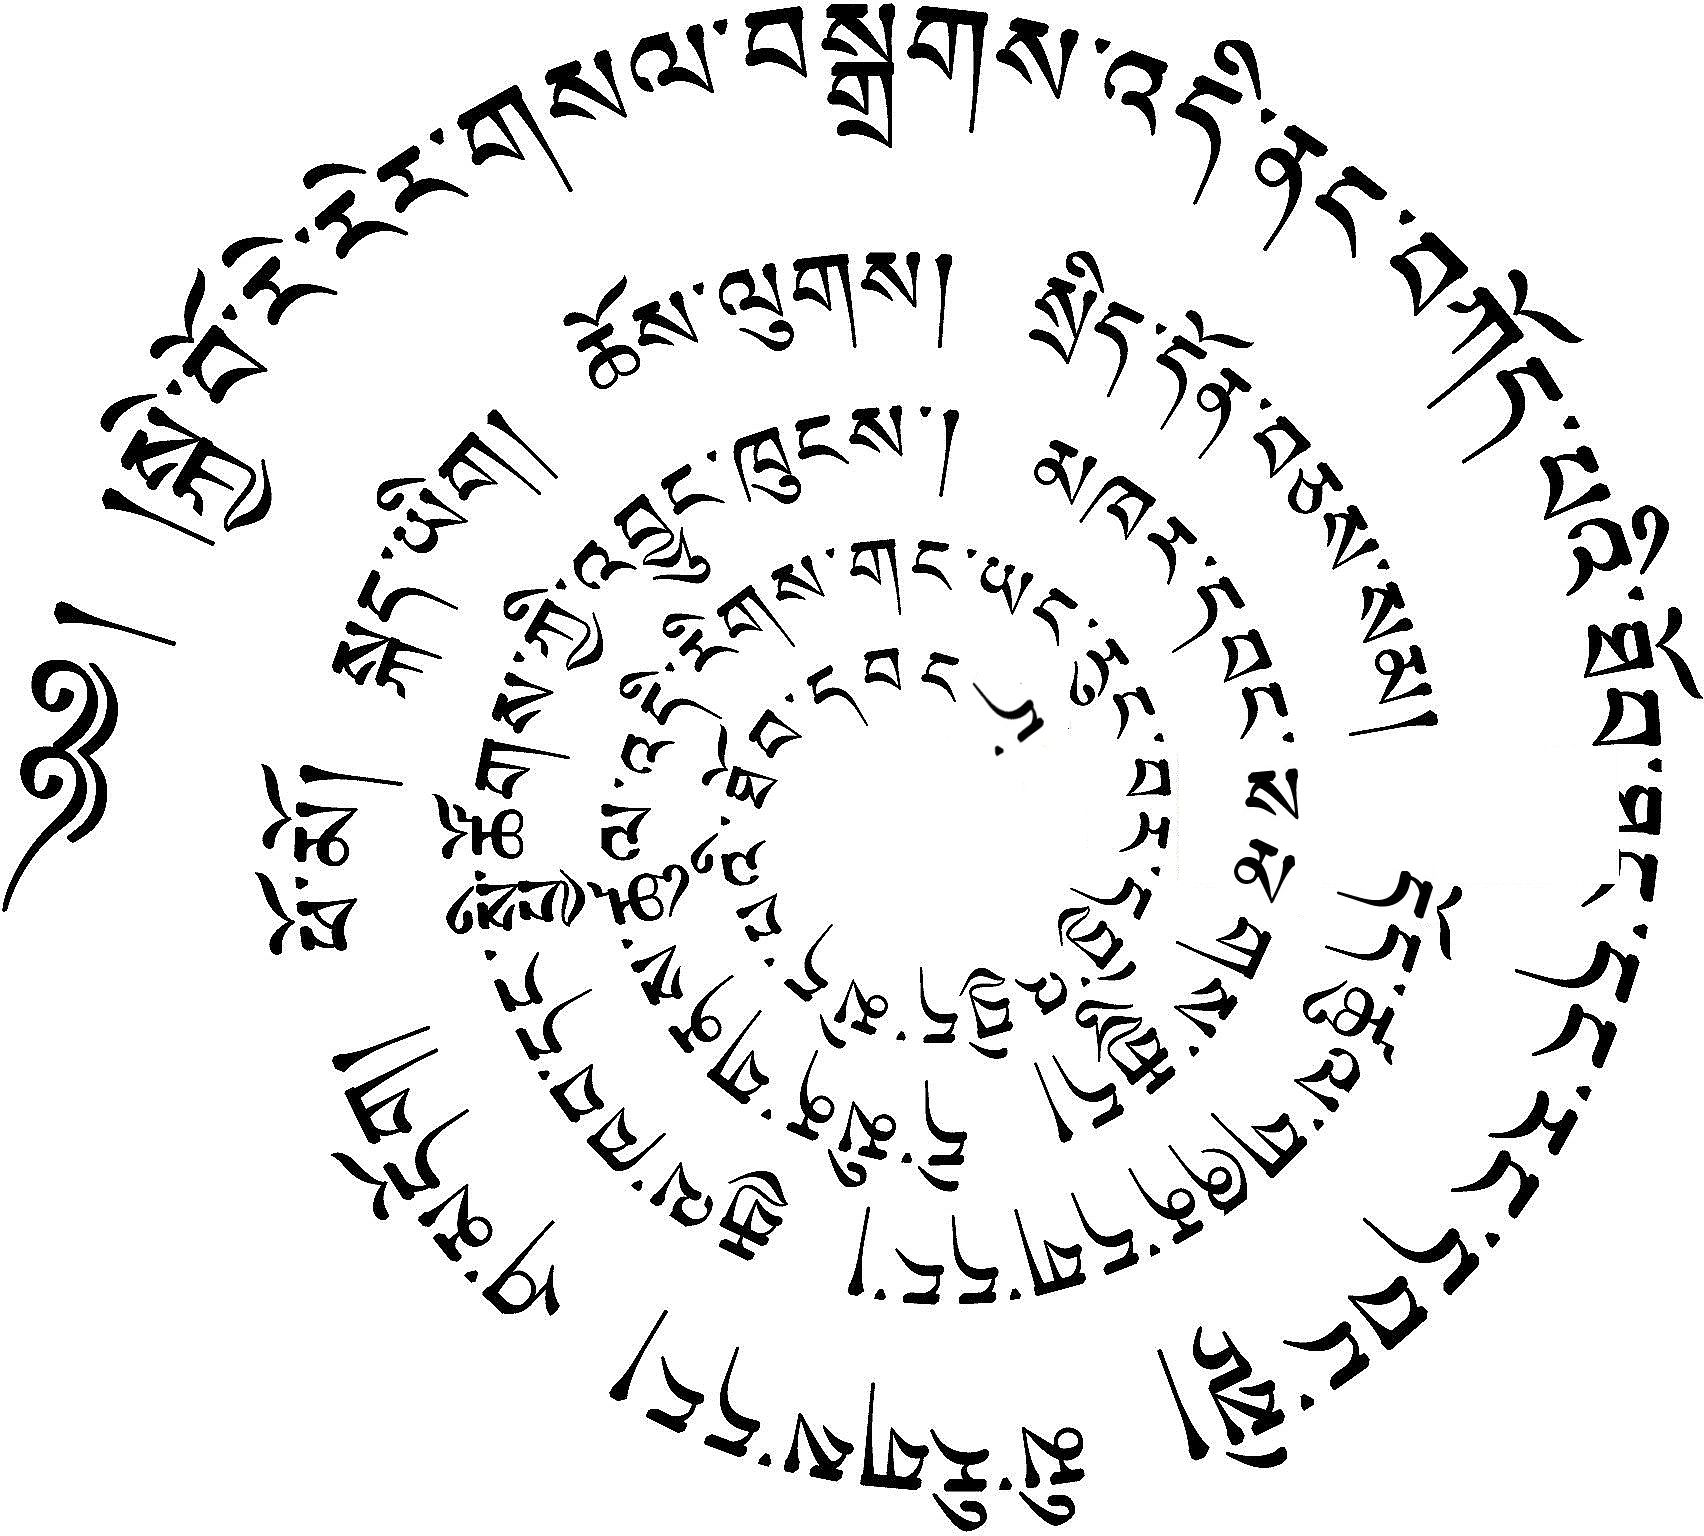 Tibetan- beautiful writing, or the most beautiful writing